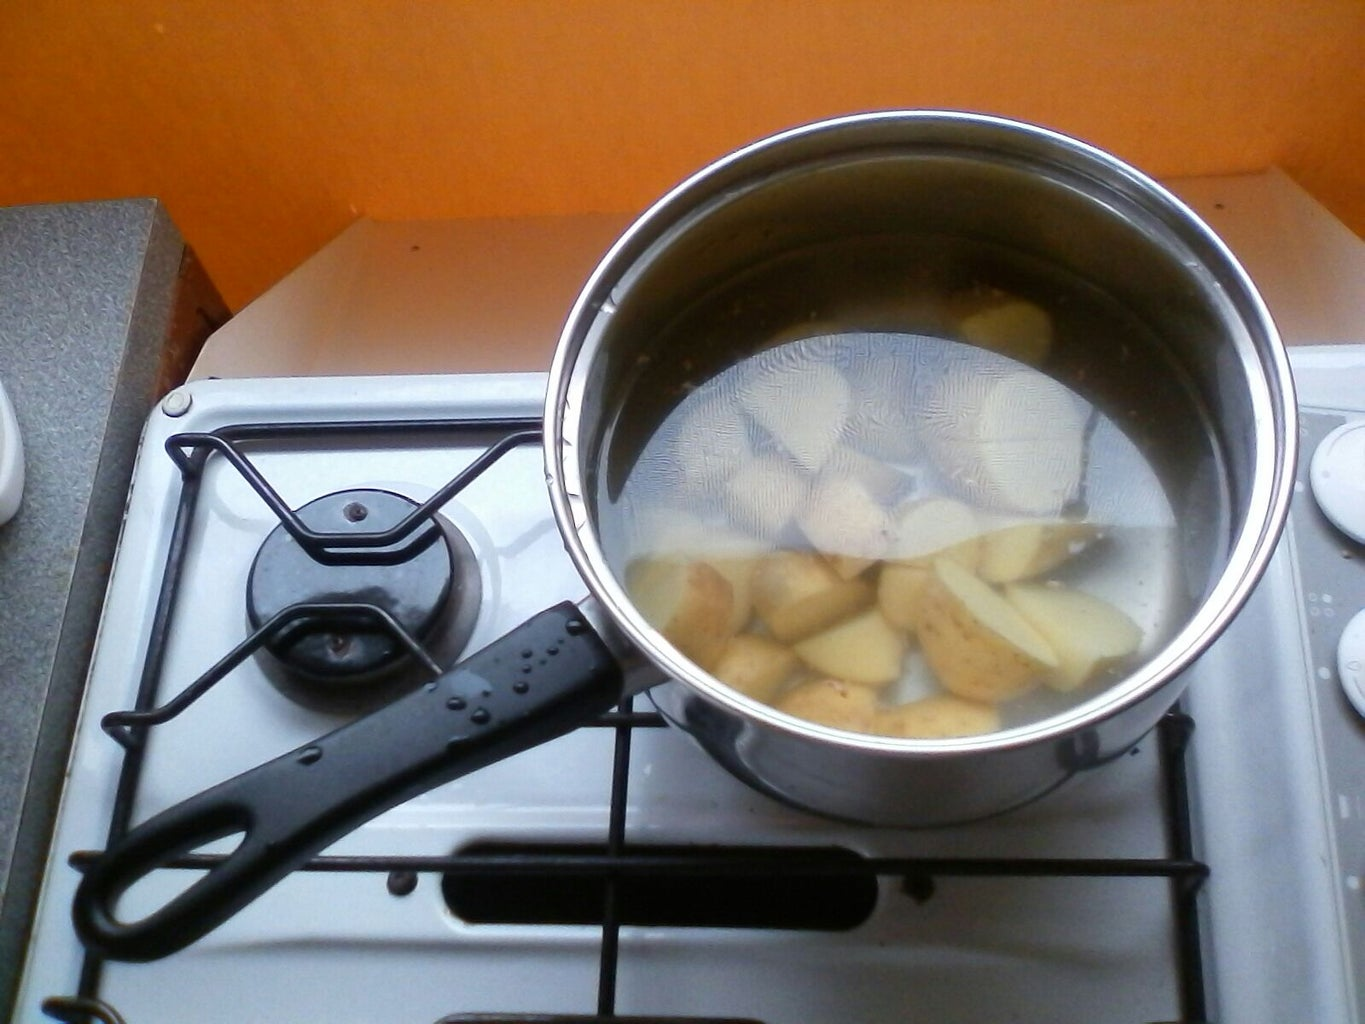 The Cooking . . .